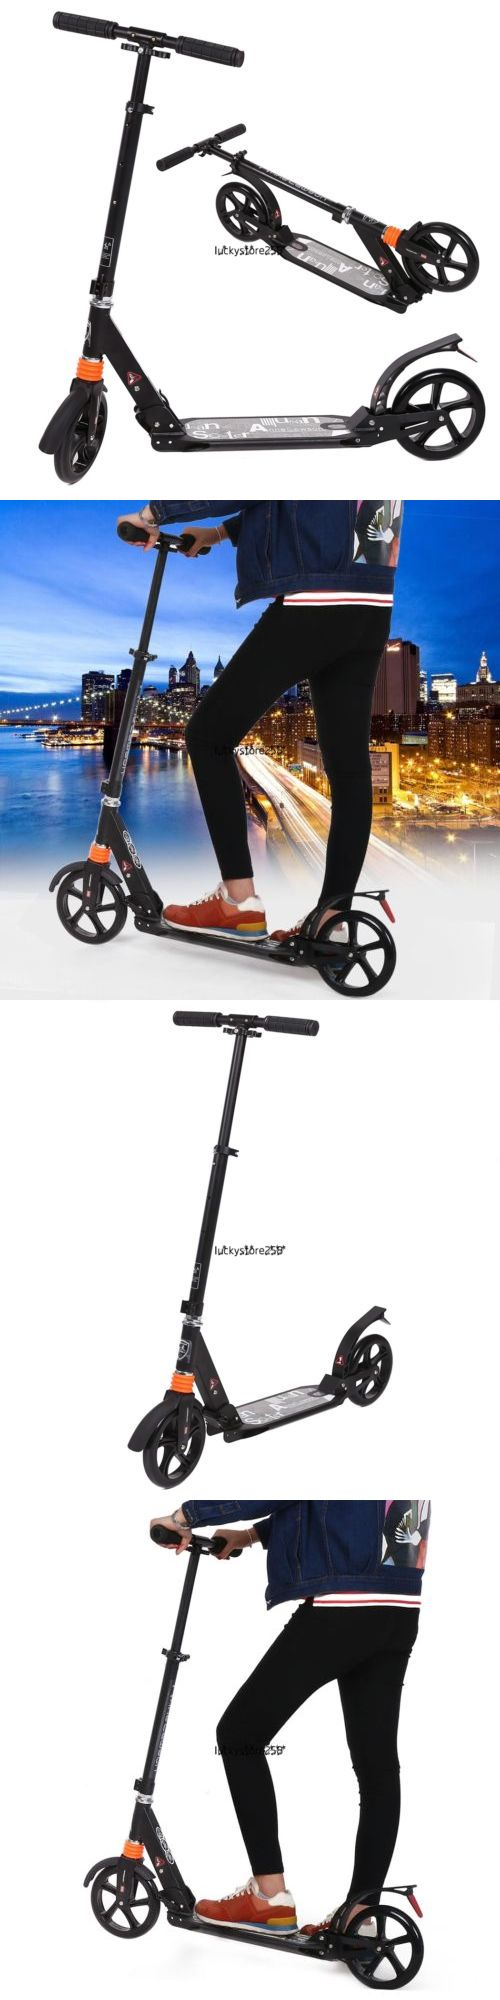 Kick Scooters 11331: 35-39 Adjustable Sturdy Adult Folding Kick Scooter Aluminum Alloy Big Wheel Lkr8 -> BUY IT NOW ONLY: $57.99 on eBay!